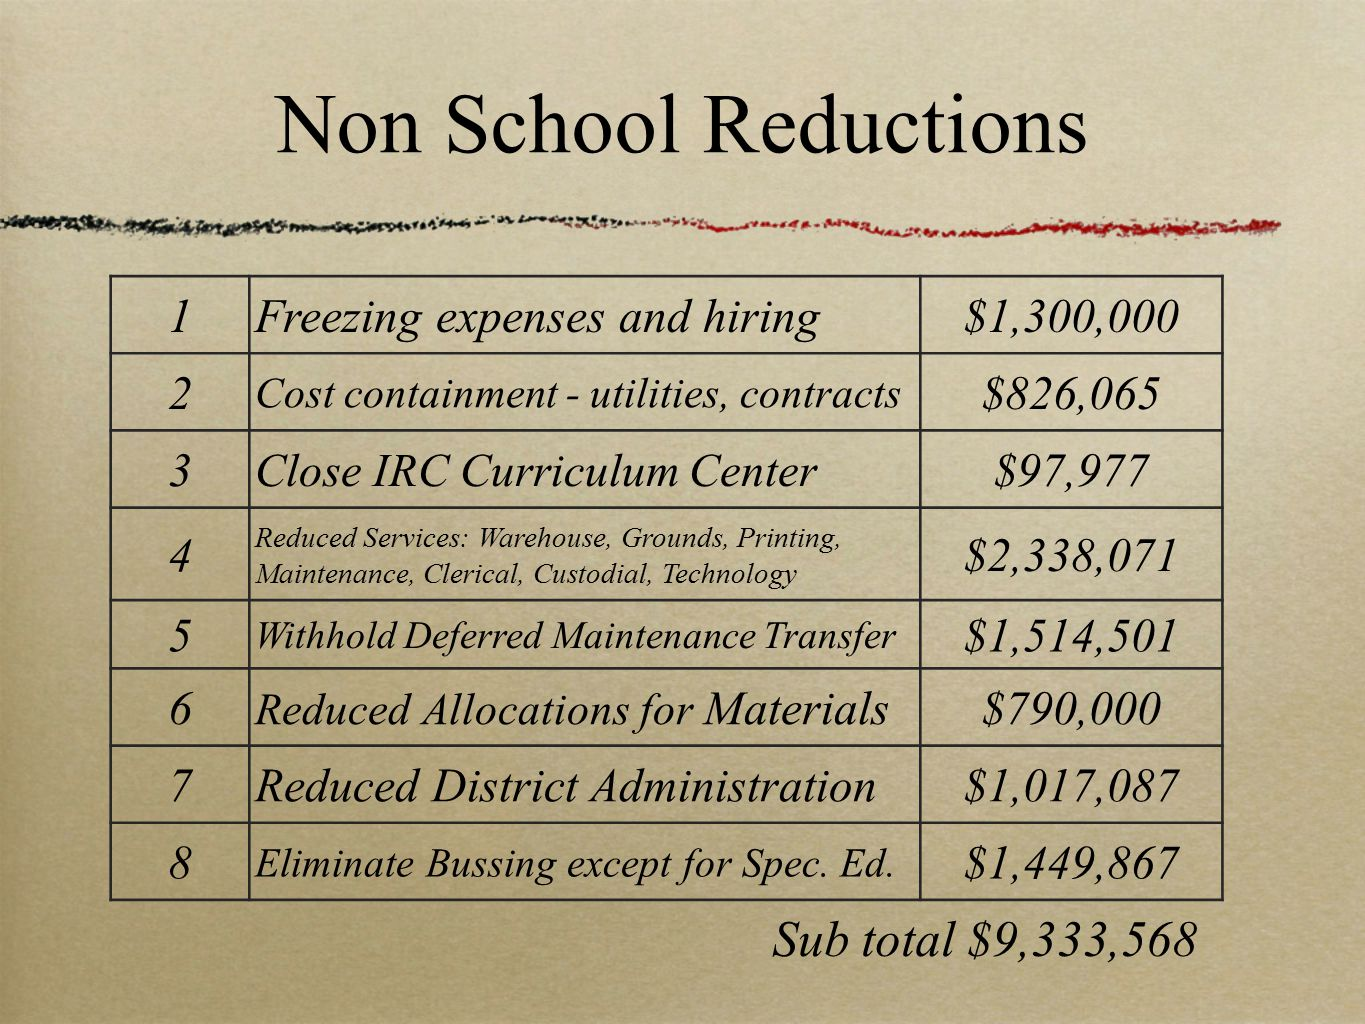 Non School Reductions 1Freezing expenses and hiring$1,300,000 2 Cost containment - utilities, contracts $826,065 3 Close IRC Curriculum Center $97,977 4 Reduced Services: Warehouse, Grounds, Printing, Maintenance, Clerical, Custodial, Technology $2,338,071 5 Withhold Deferred Maintenance Transfer $1,514,501 6 Reduced Allocations for Materials$790,000 7Reduced District Administration$1,017,087 8 Eliminate Bussing except for Spec.